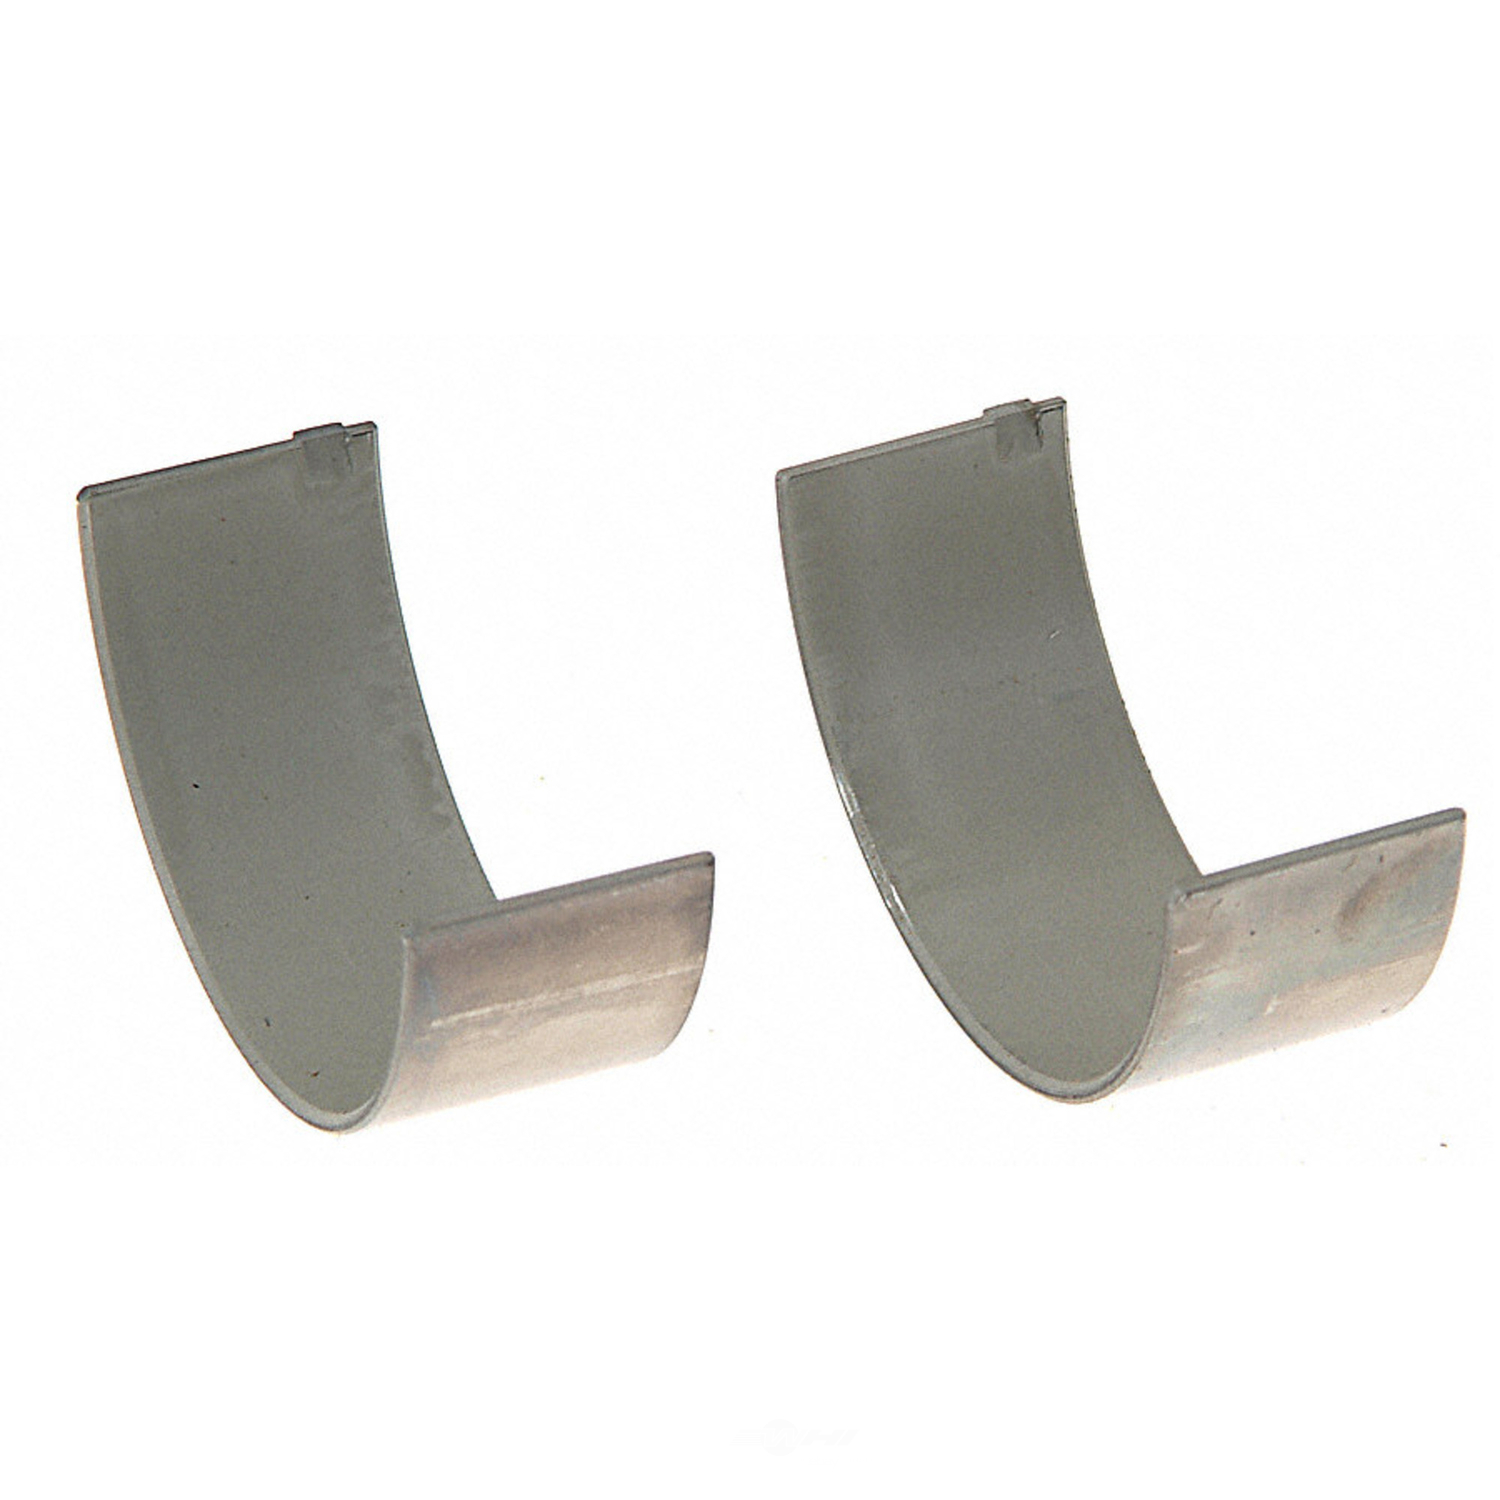 SEALED POWER - Engine Connecting Rod Bearing - SEA 2320CP 10